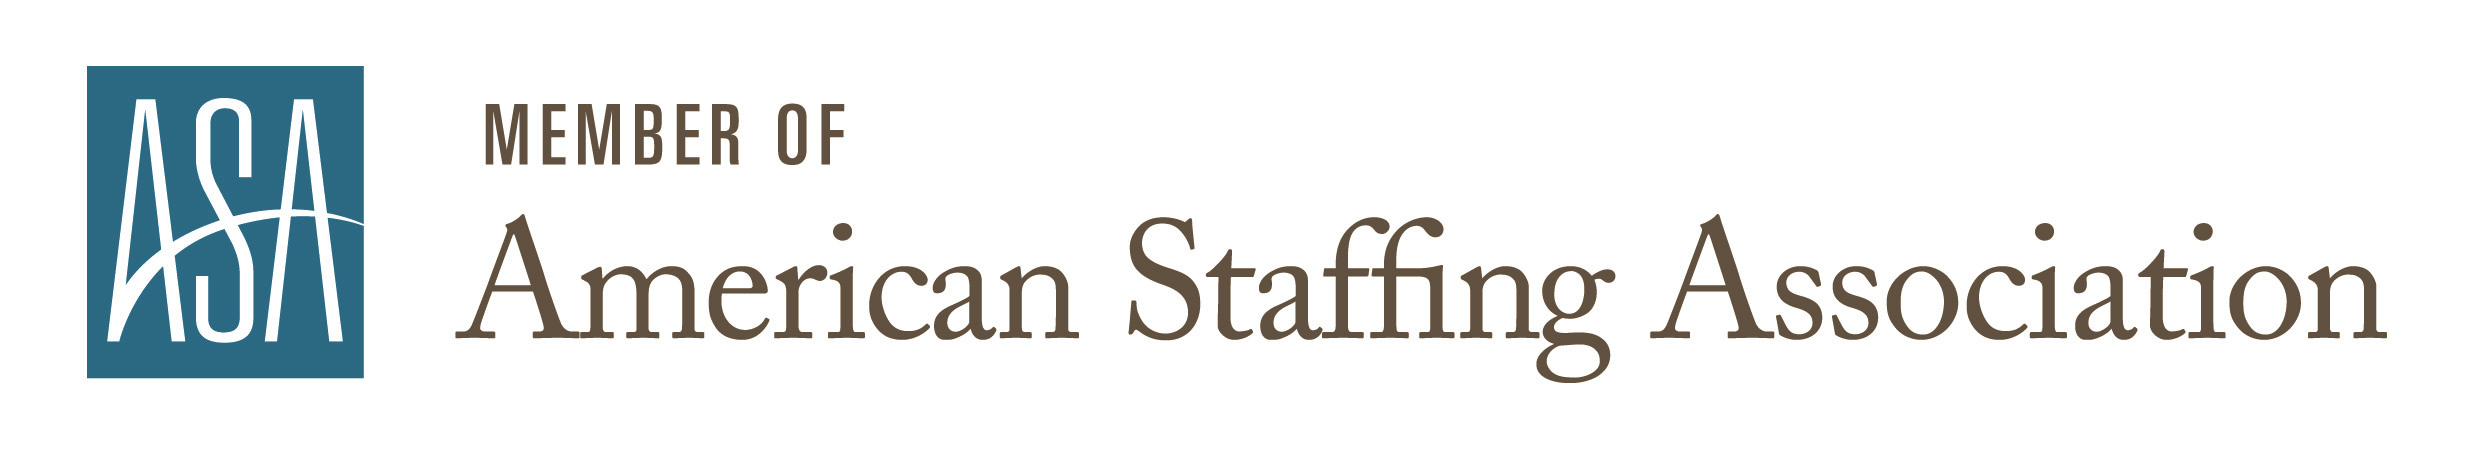 Member of American Staffing Association Image